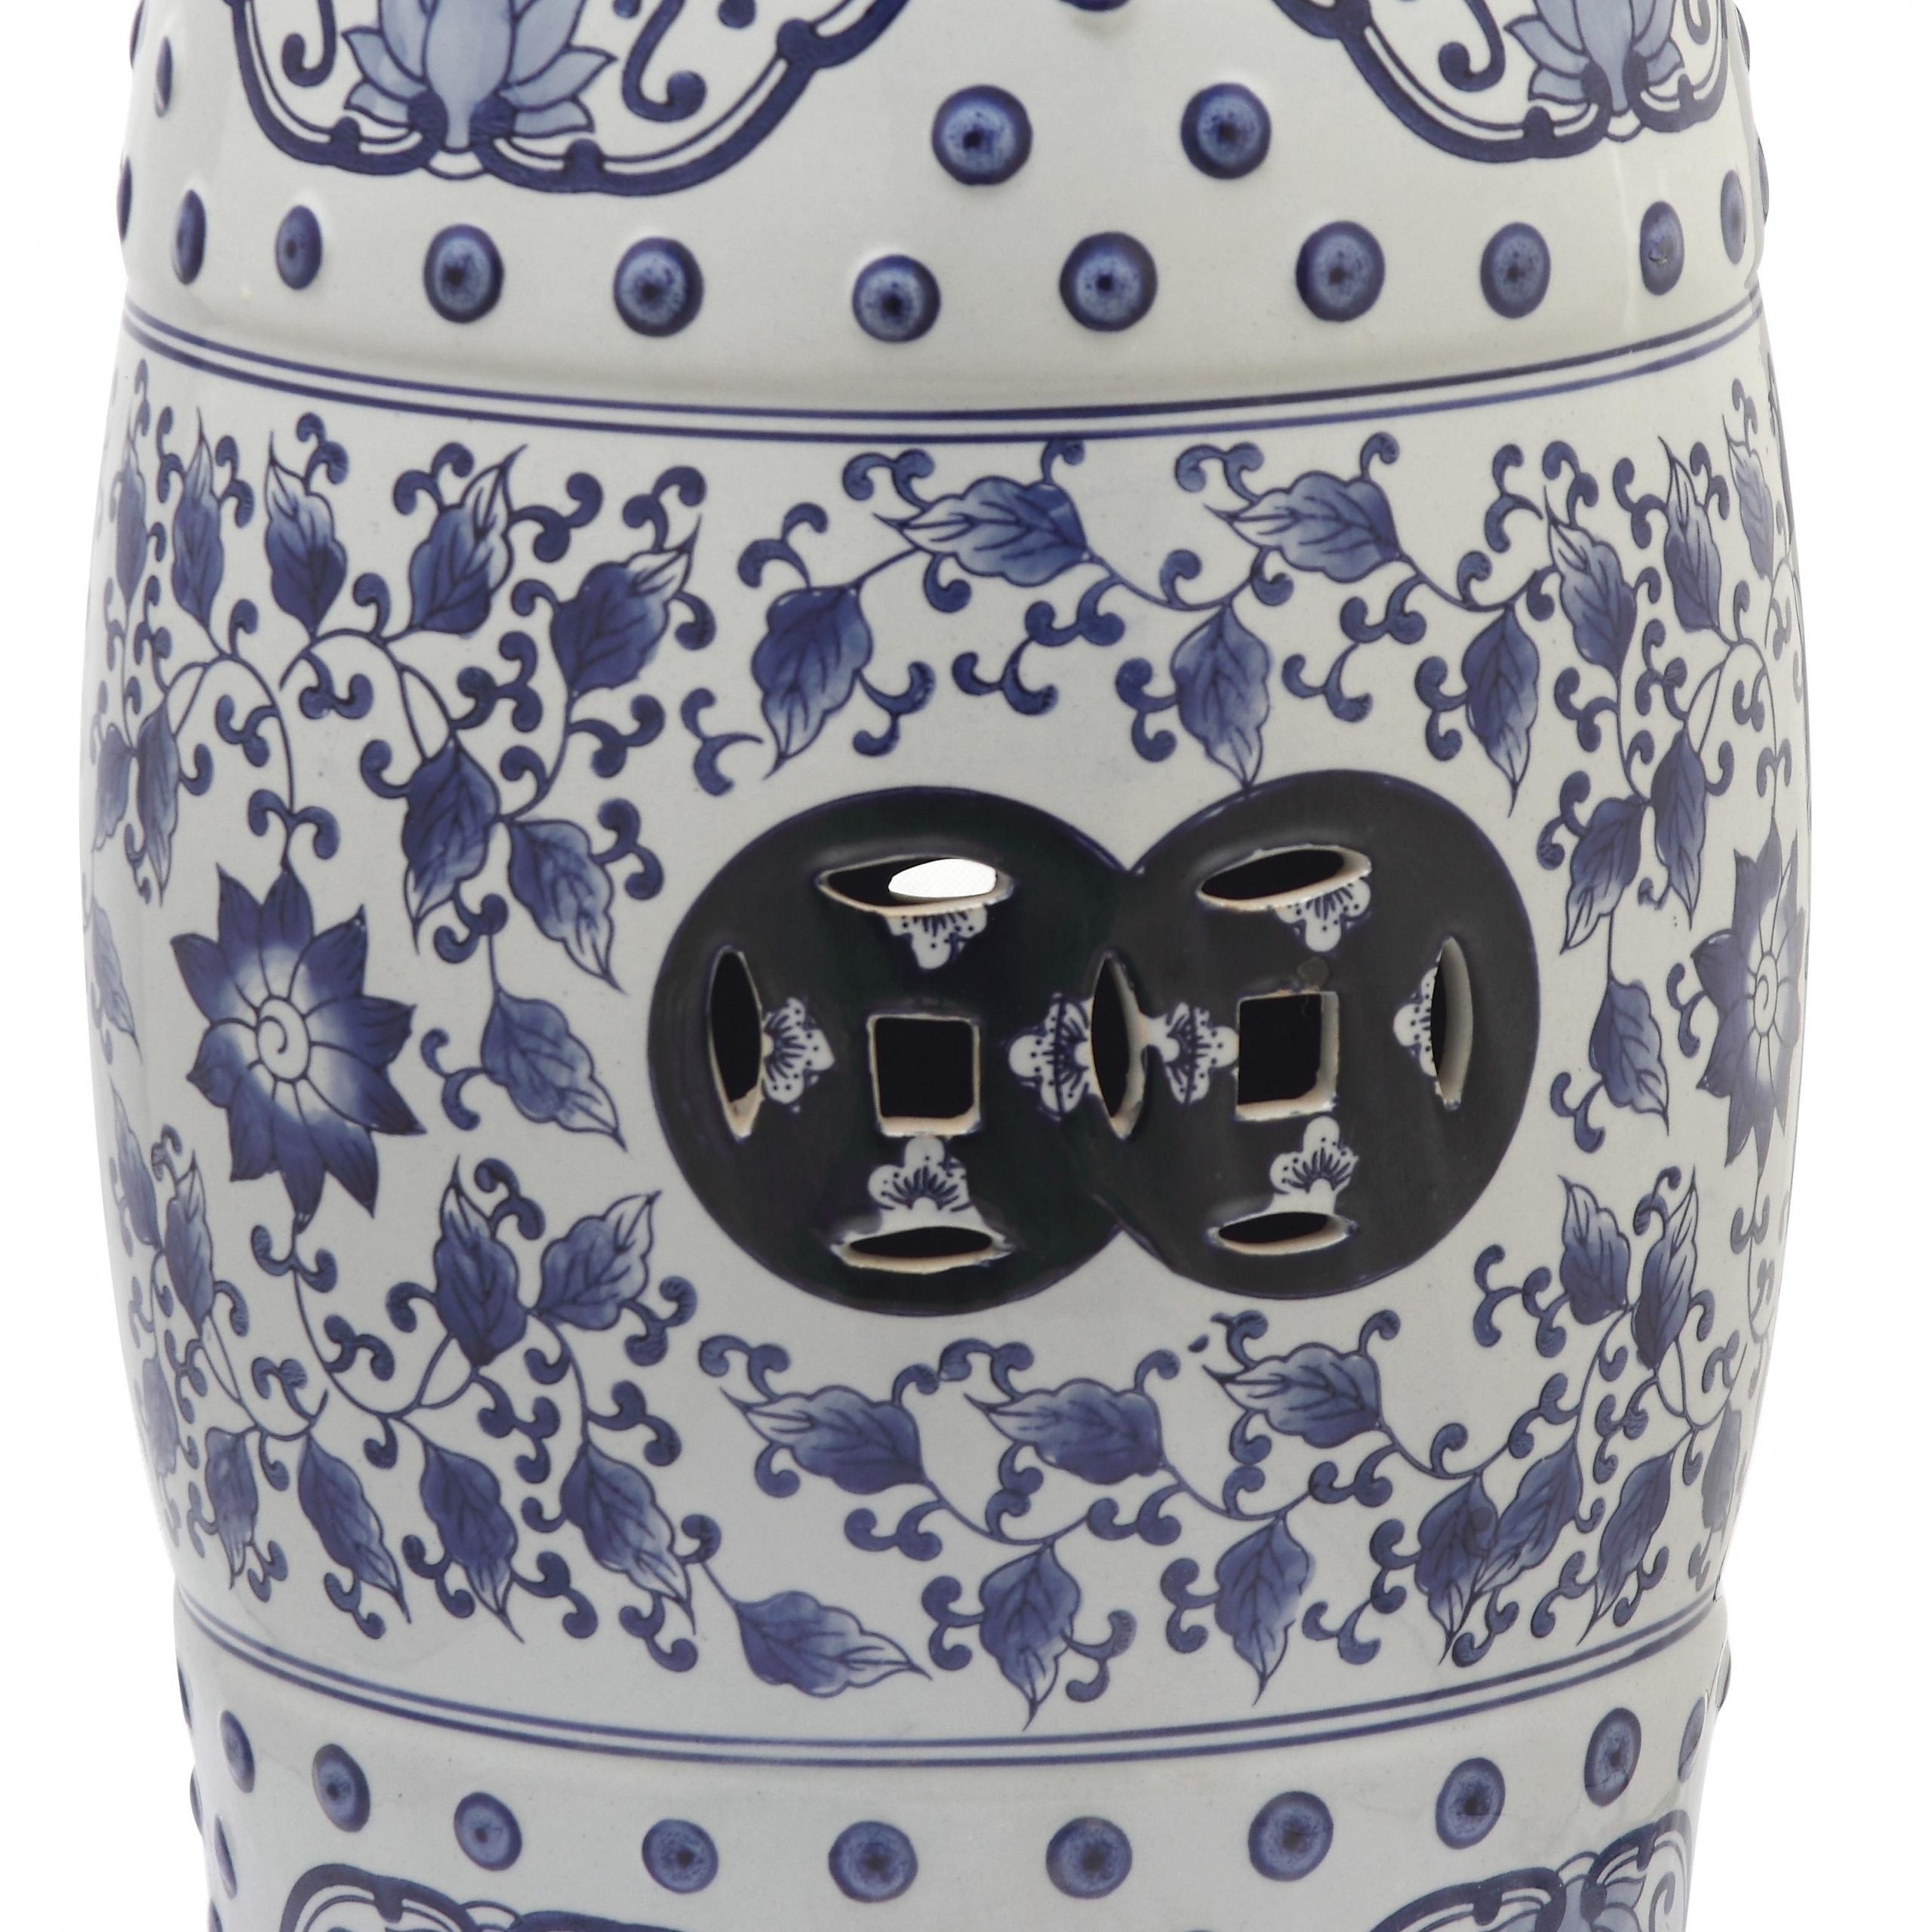 Middlet Owl Ceramic Garden Stools Inside Most Recently Released Blue & White Garden Stools You'll Love In (View 3 of 30)